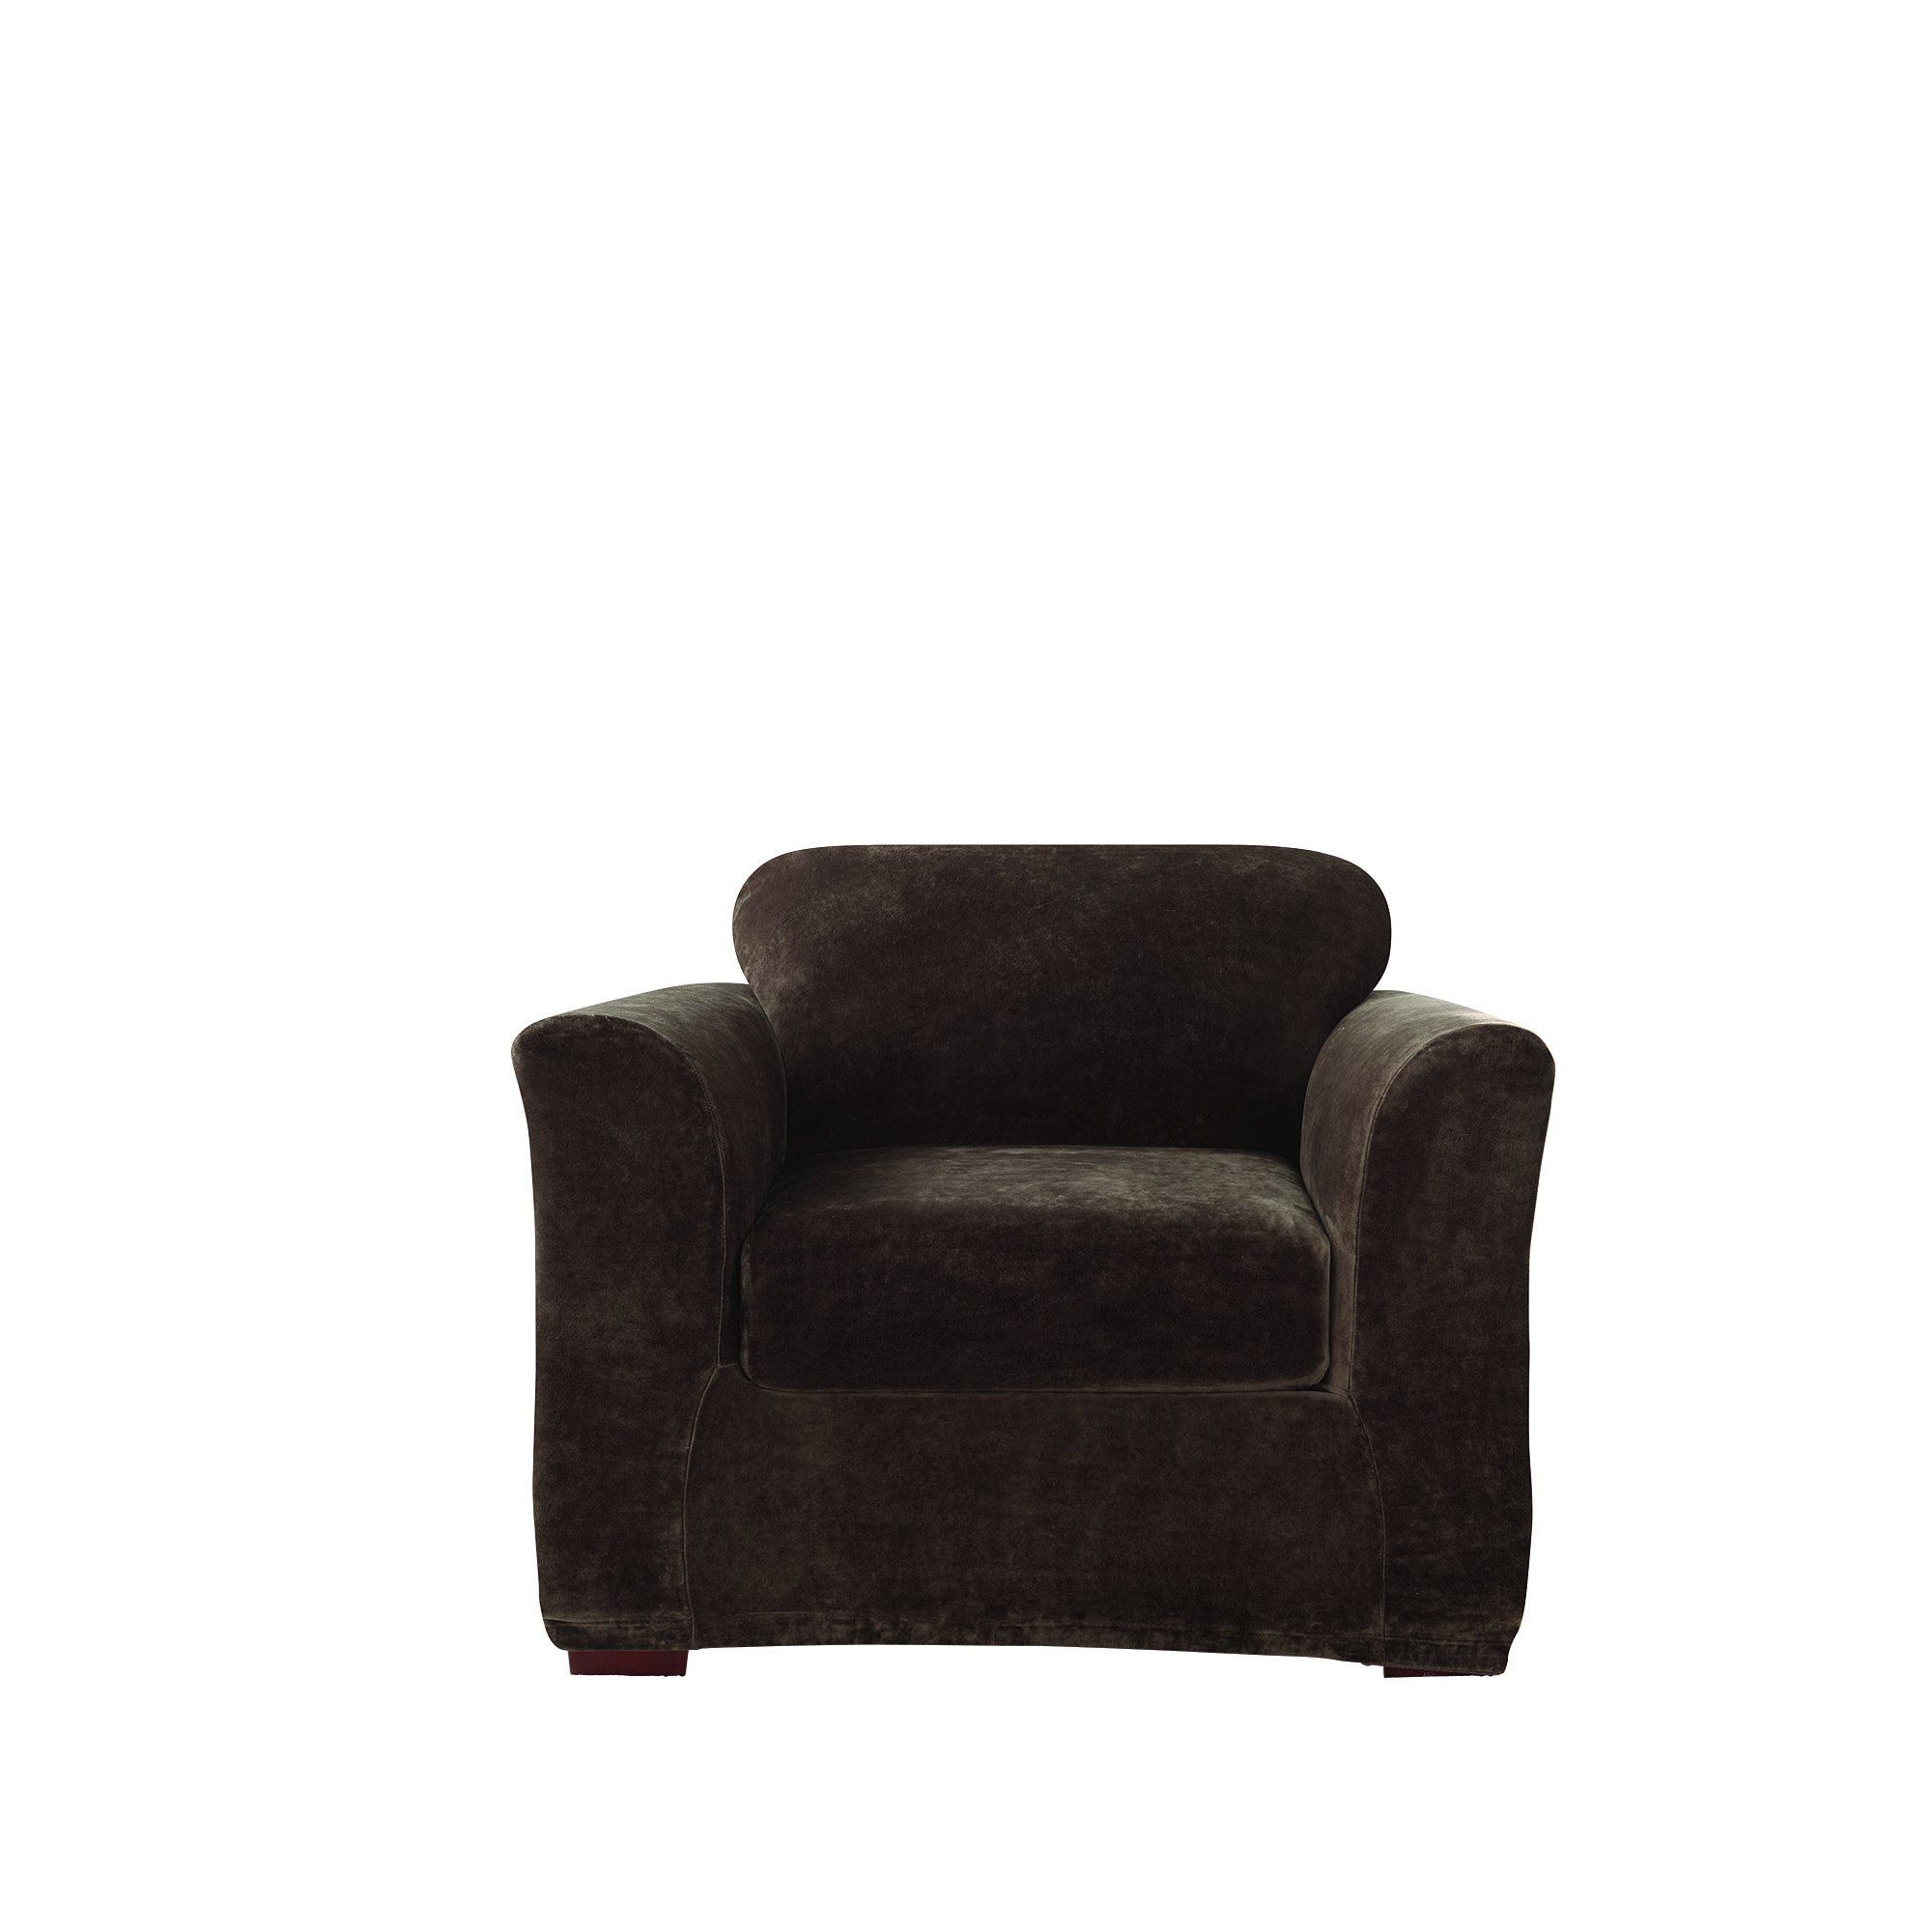 Sure Fit Stretch Plush Separate Seat Chair Slipcover - Chocolate by Surefit